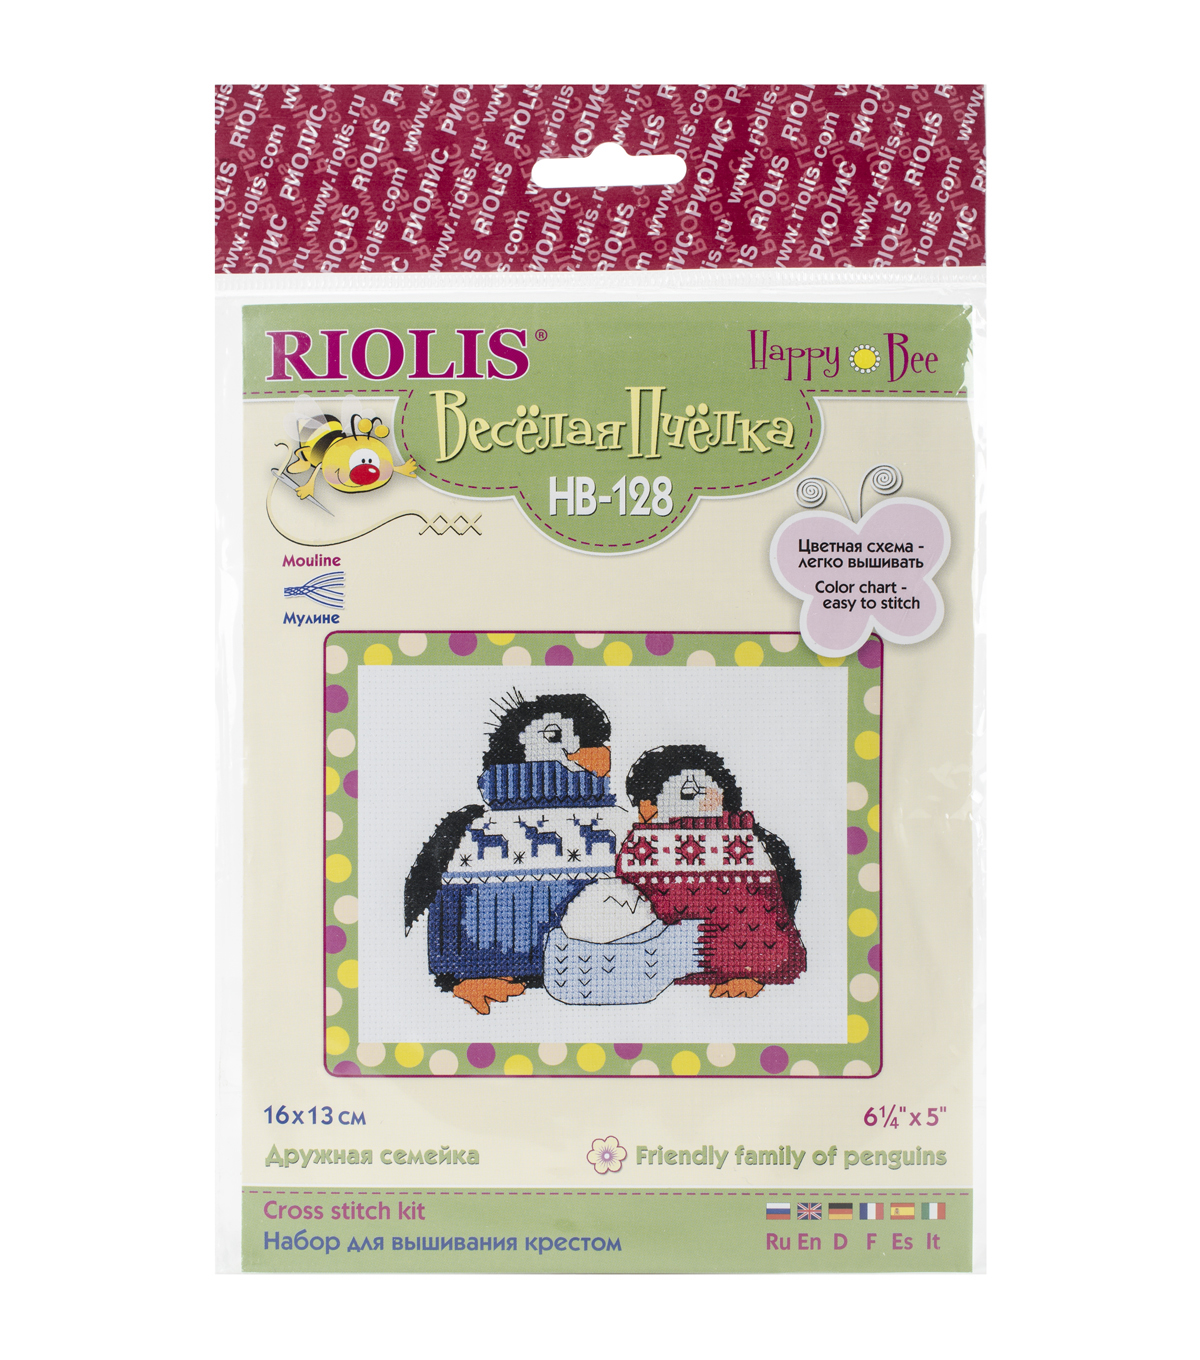 Riolis 6.25\u0027\u0027x5\u0027\u0027 Counted Cross Stitch Kit-Friendly Family